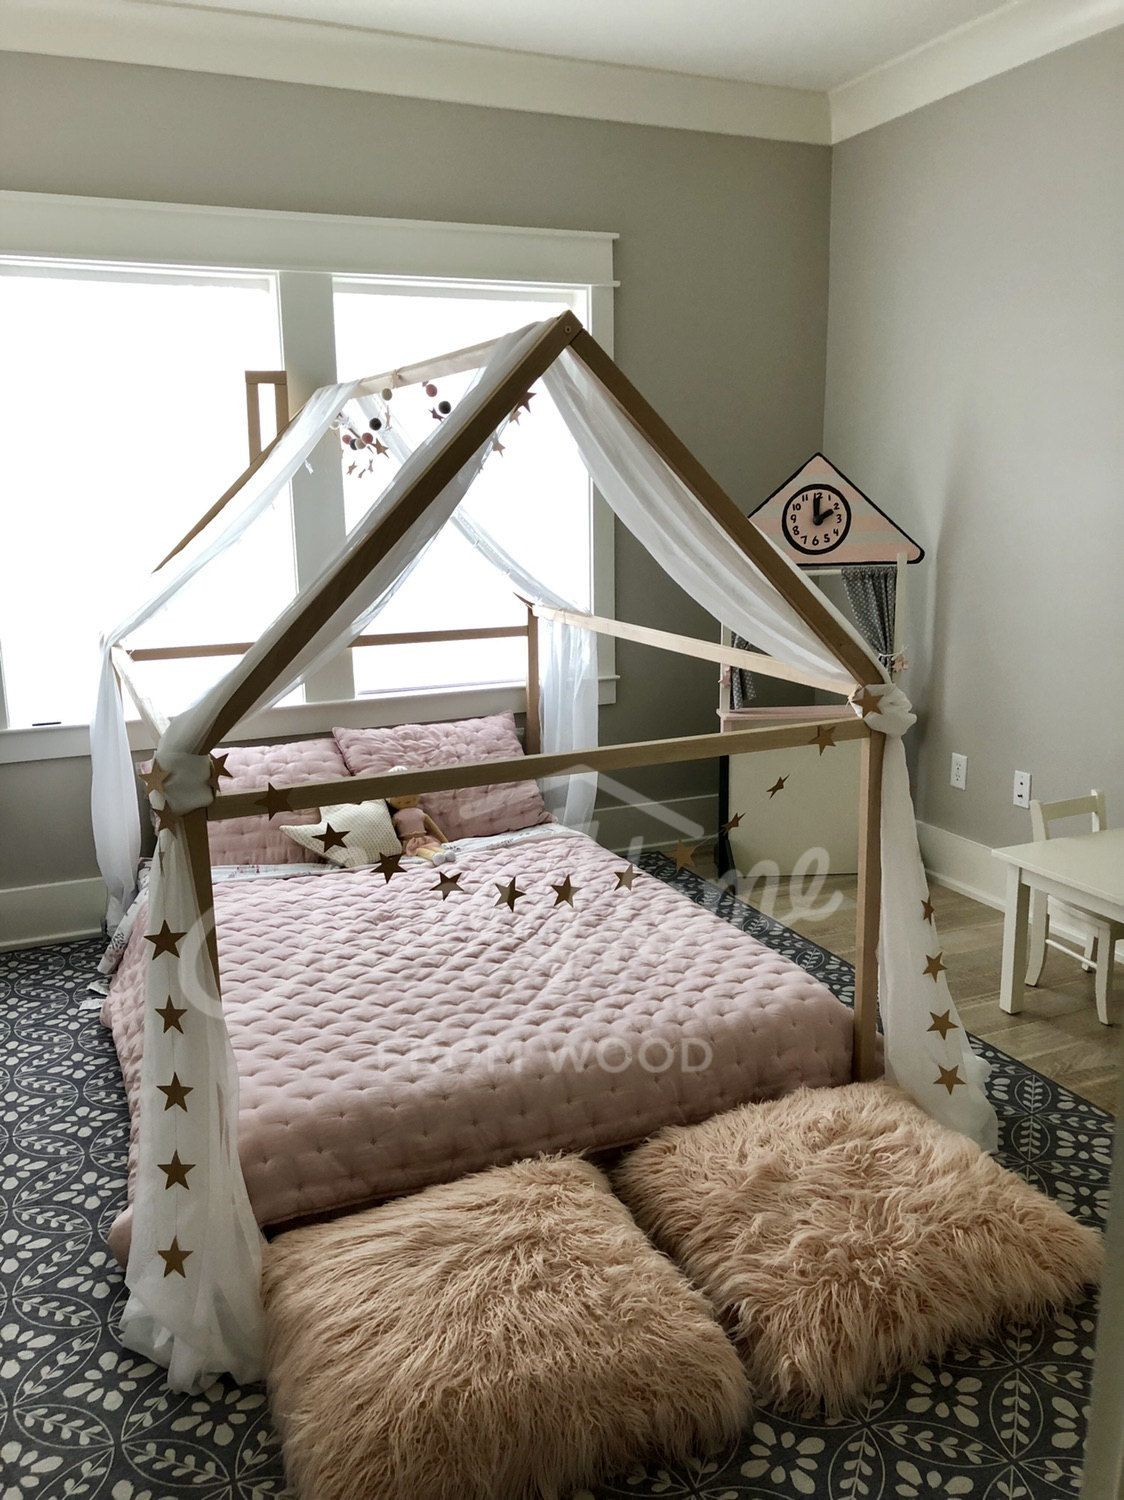 Montessori Toddler Beds Frame Bed House Bed House Wood House